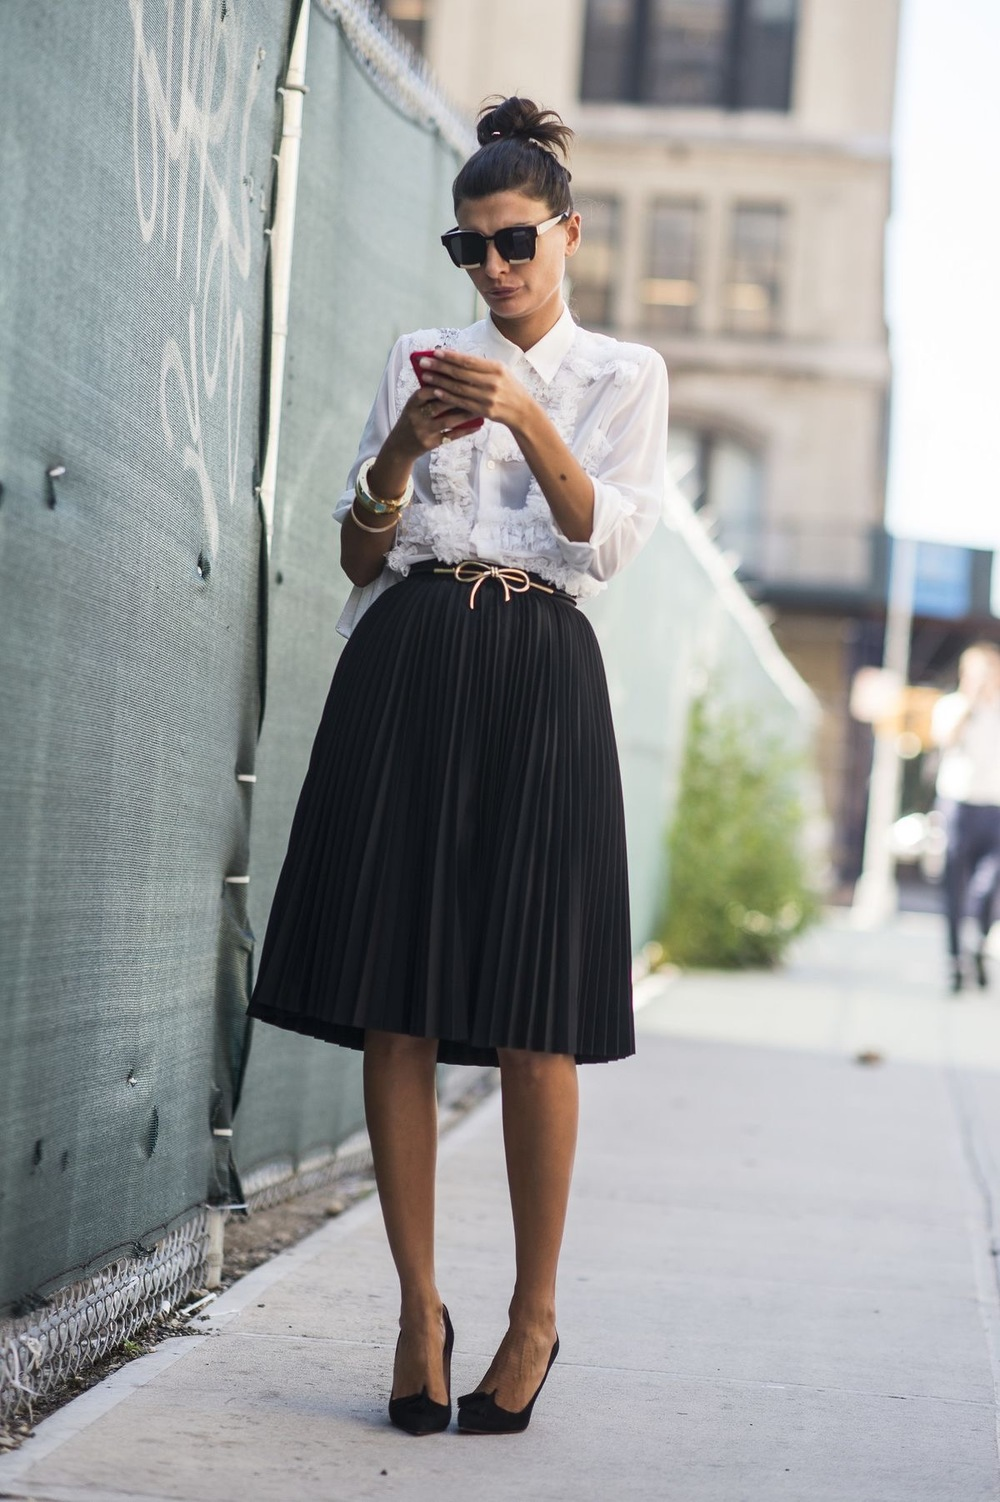 White button downs and black skirts are workplace wardrobe essentials. Spice these combos up with statement jewelry, shoes or handbags.